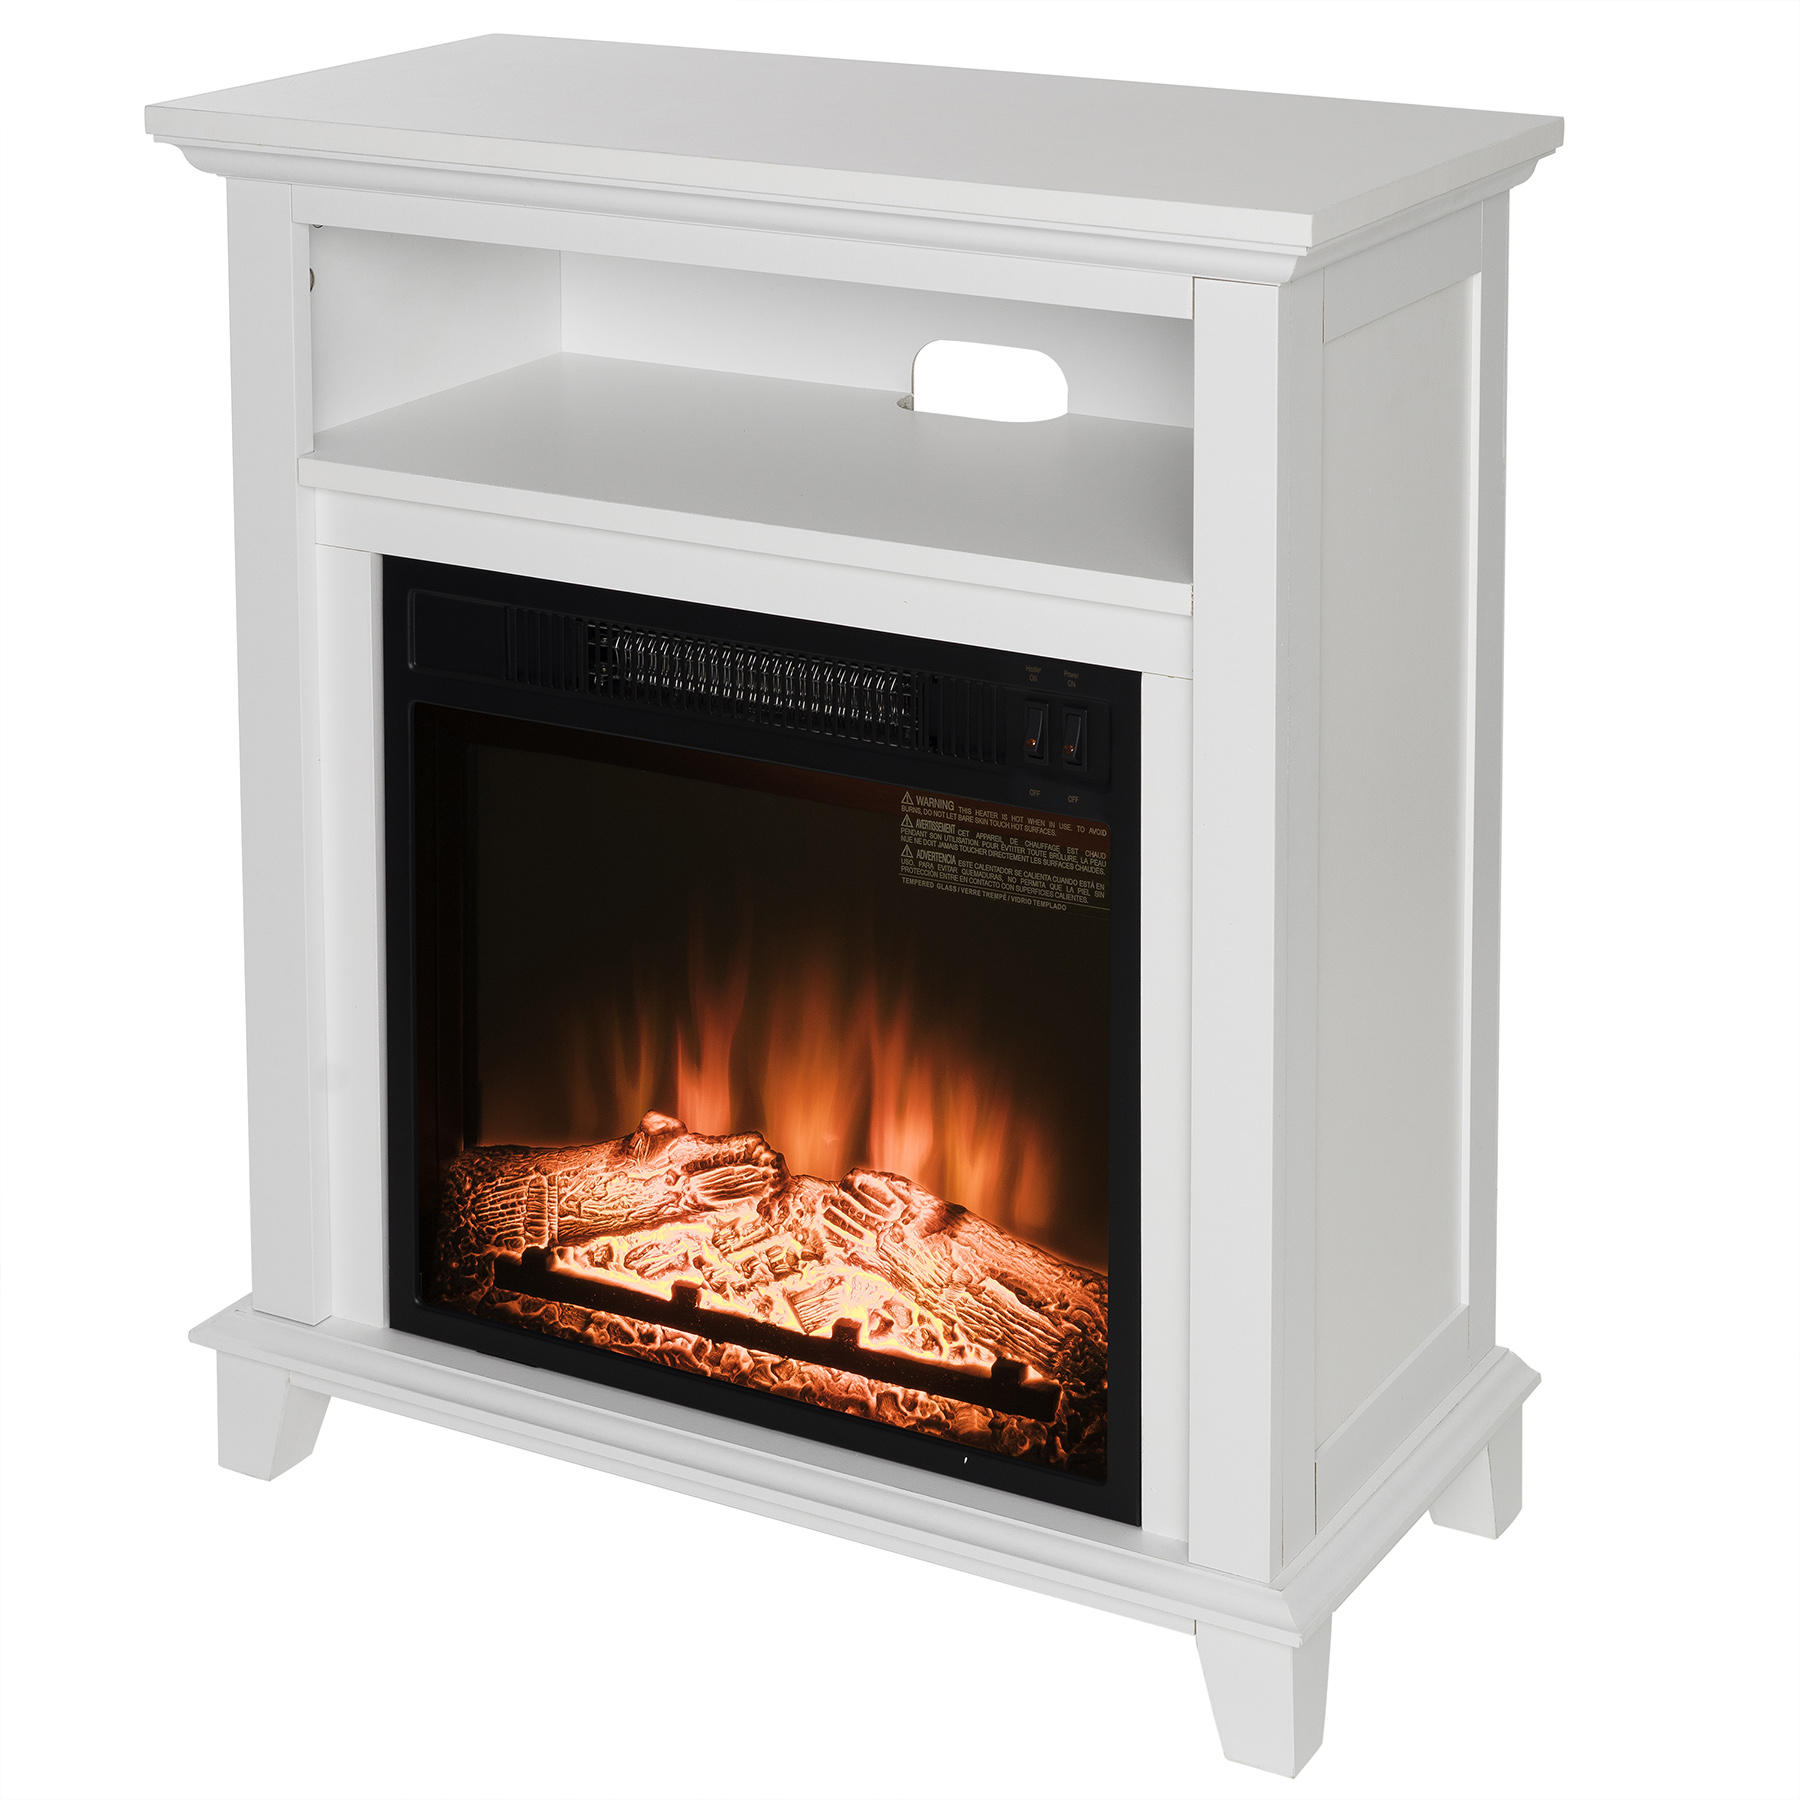 "AKDY FP0092 27"" Electric Fireplace Freestanding White Wooden Mantel Shelf Firebox... by AKDY"